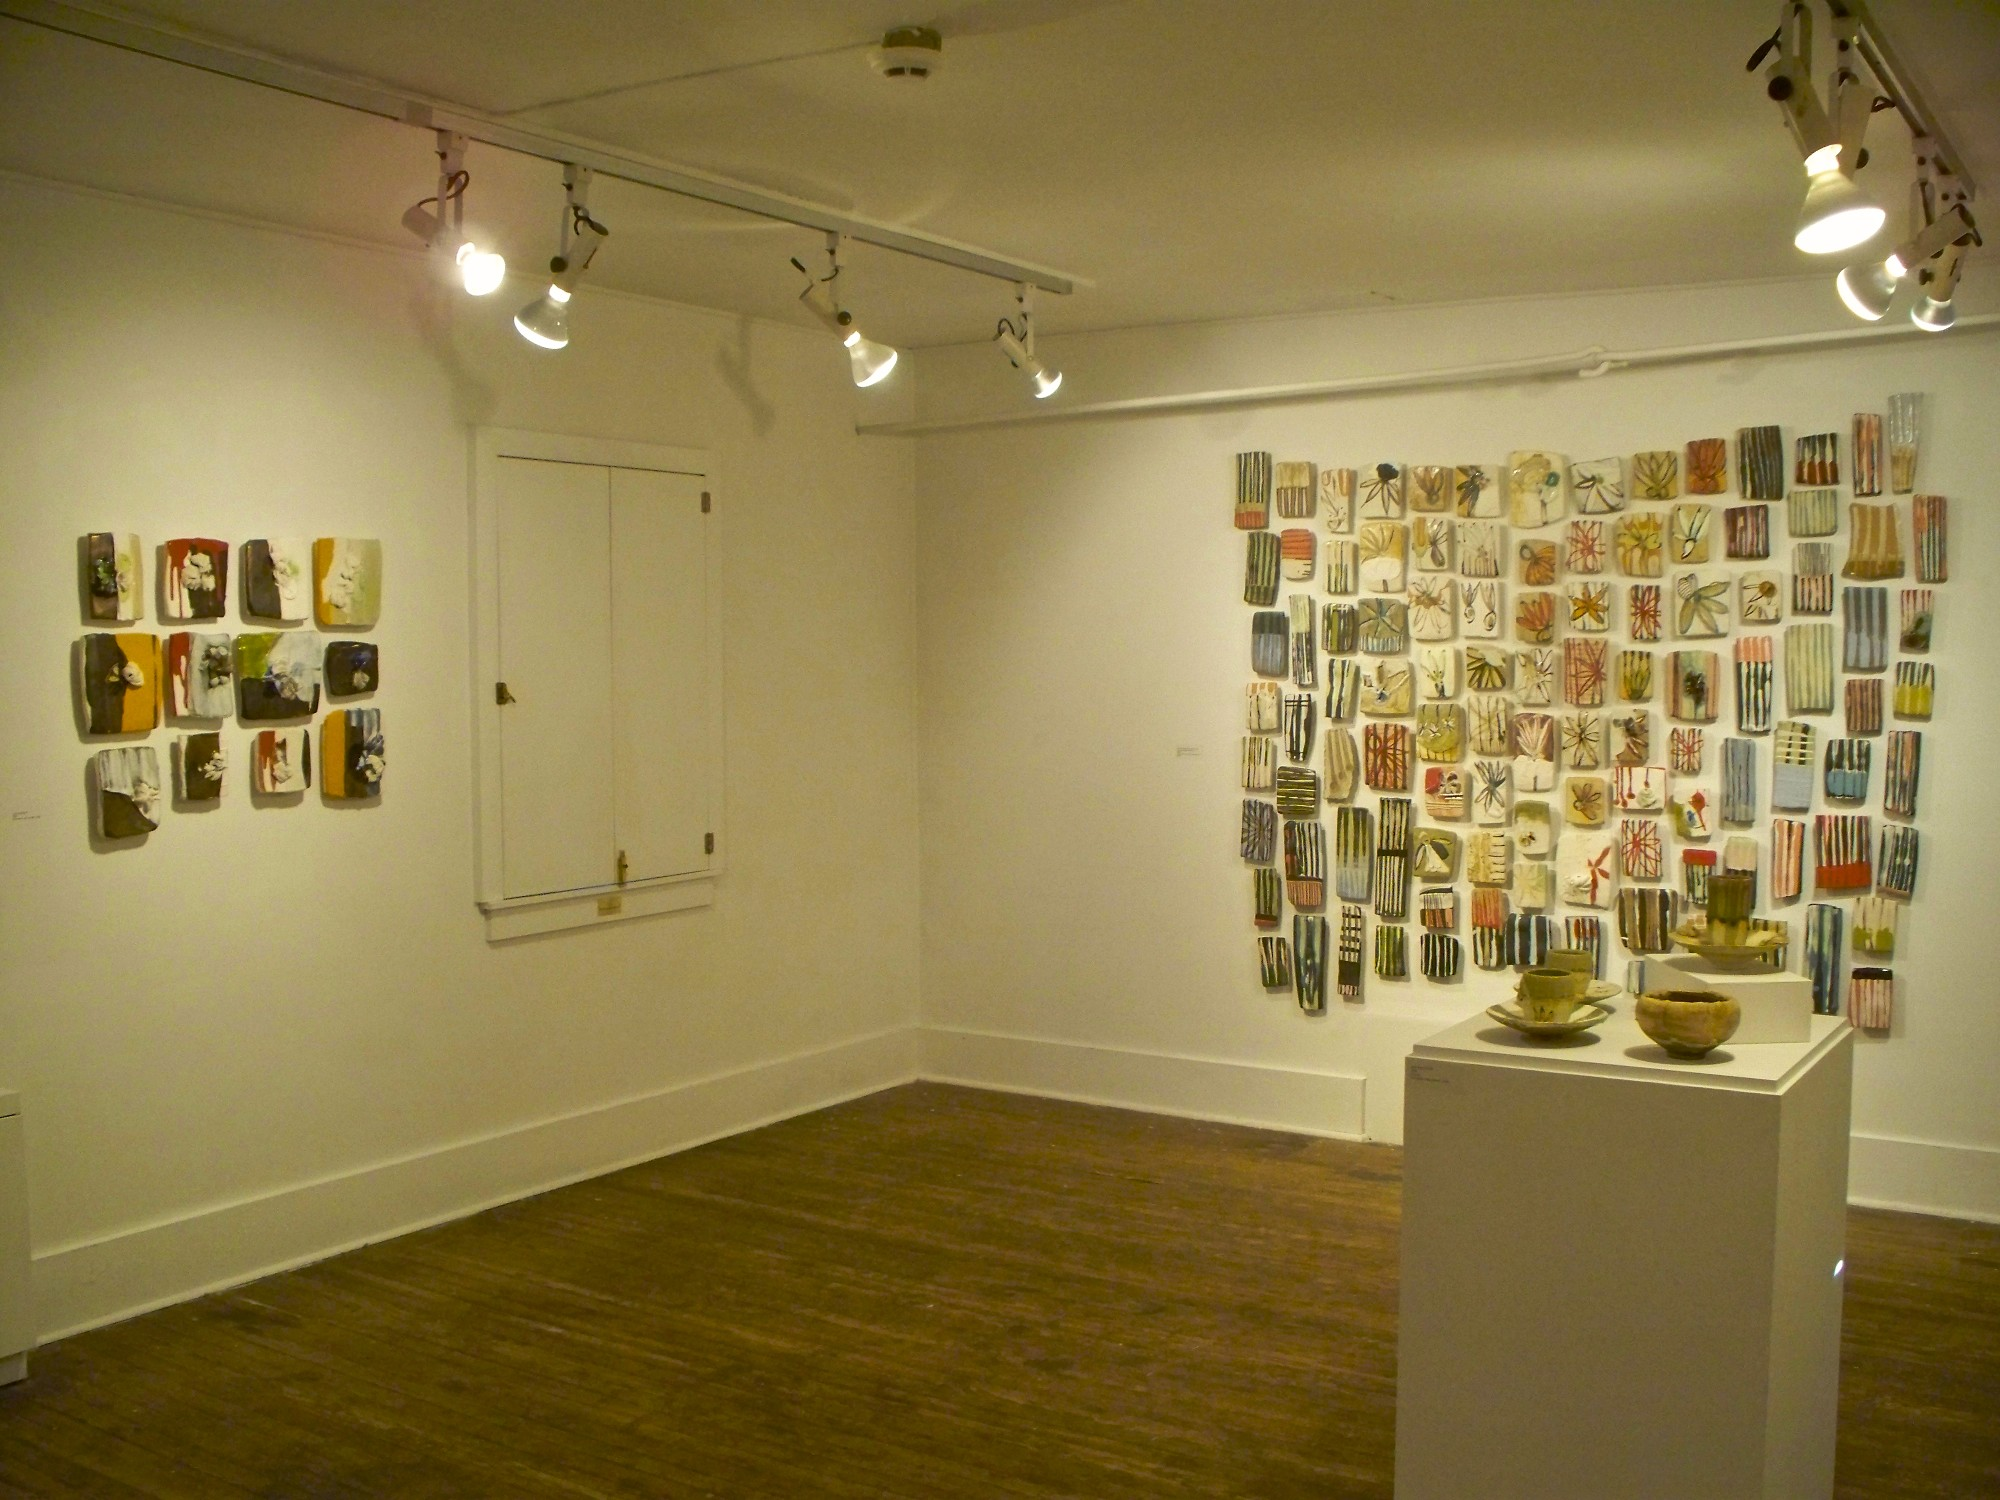 Installation view of gallery - Hunterdon Museum of Art